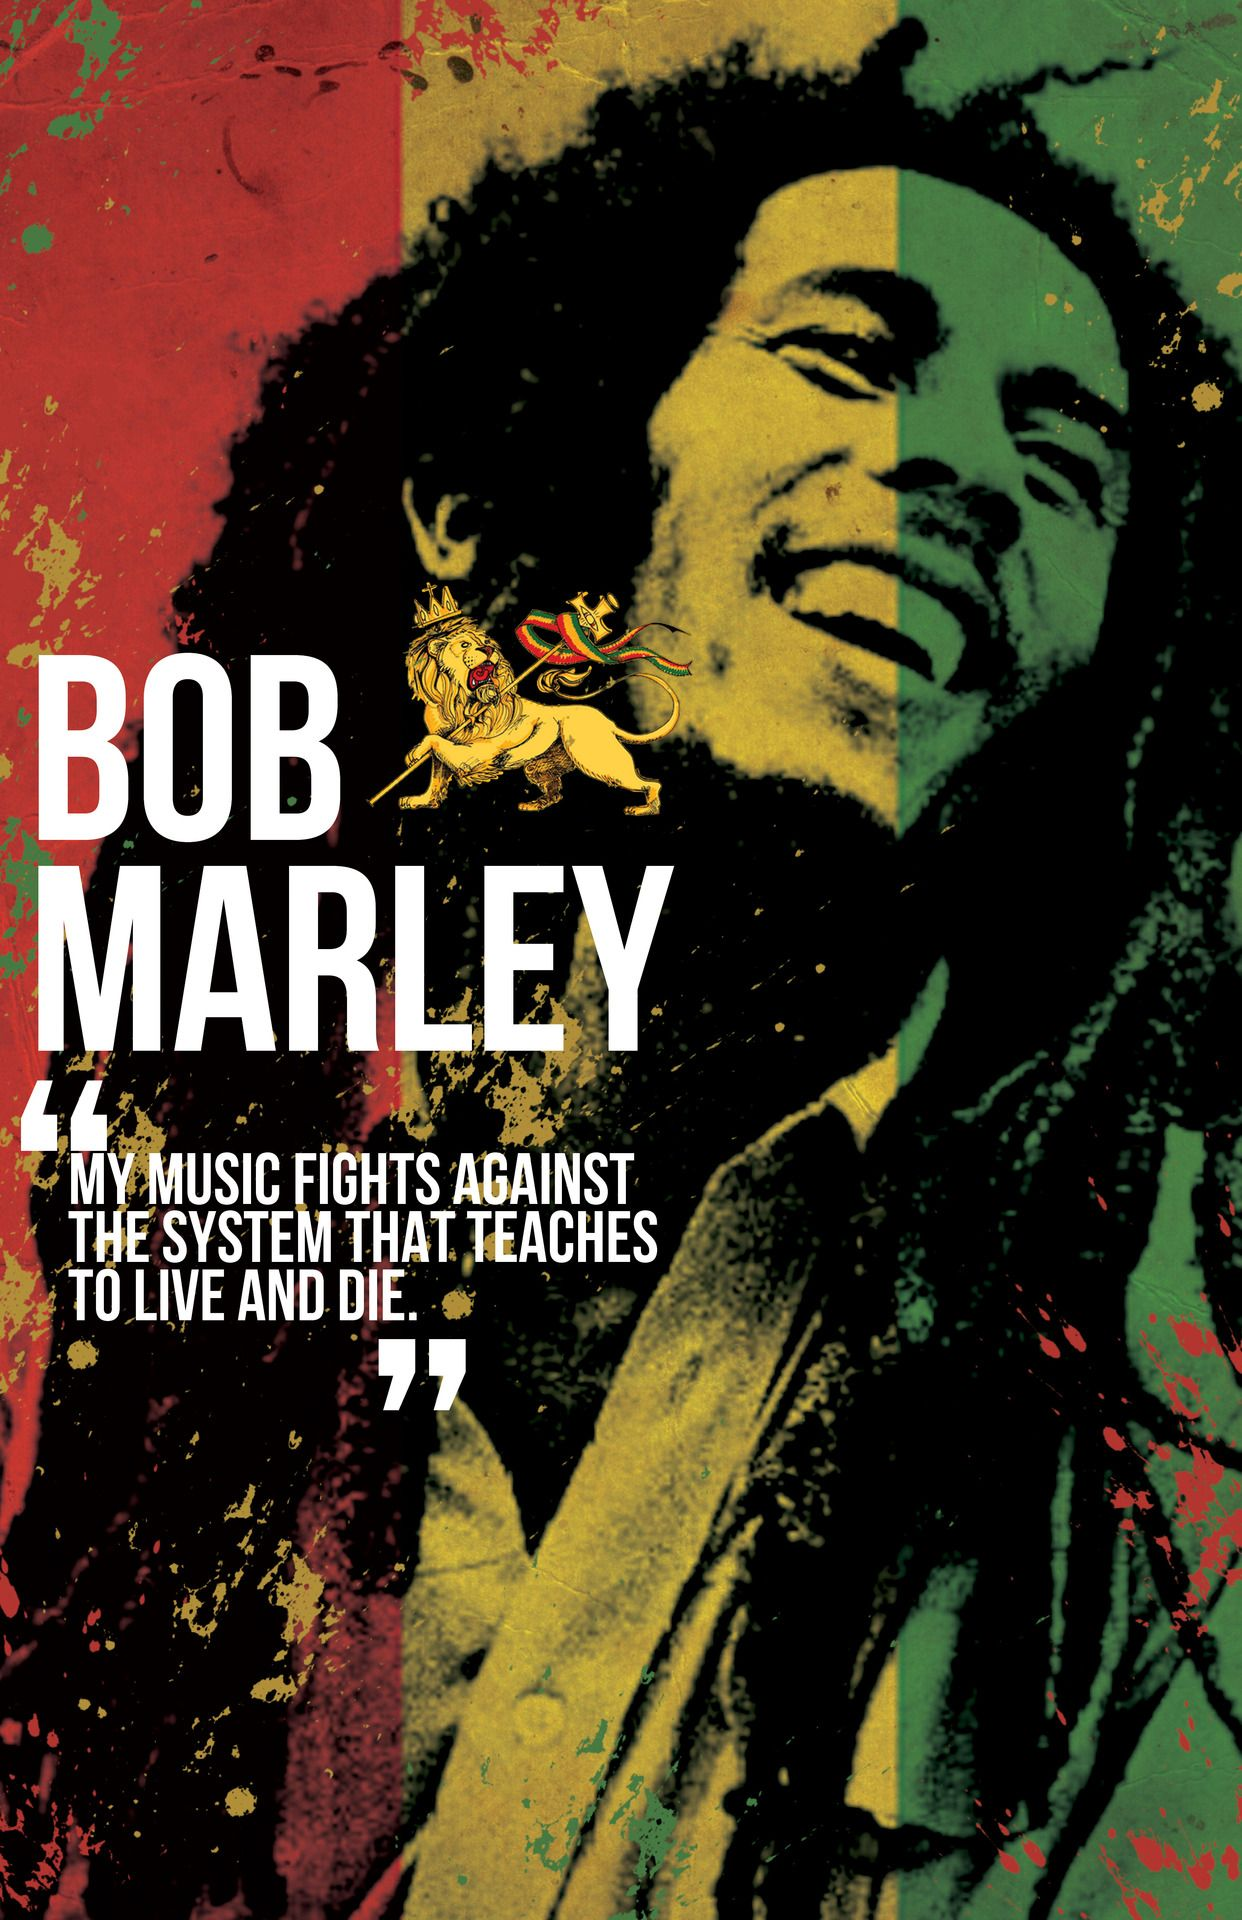 Bobmarley Was A Hero Figure In The Classic Mythological Sense His Departure From This Planet Came At A Point W Bob Marley Art Bob Marley Pictures Bob Marley